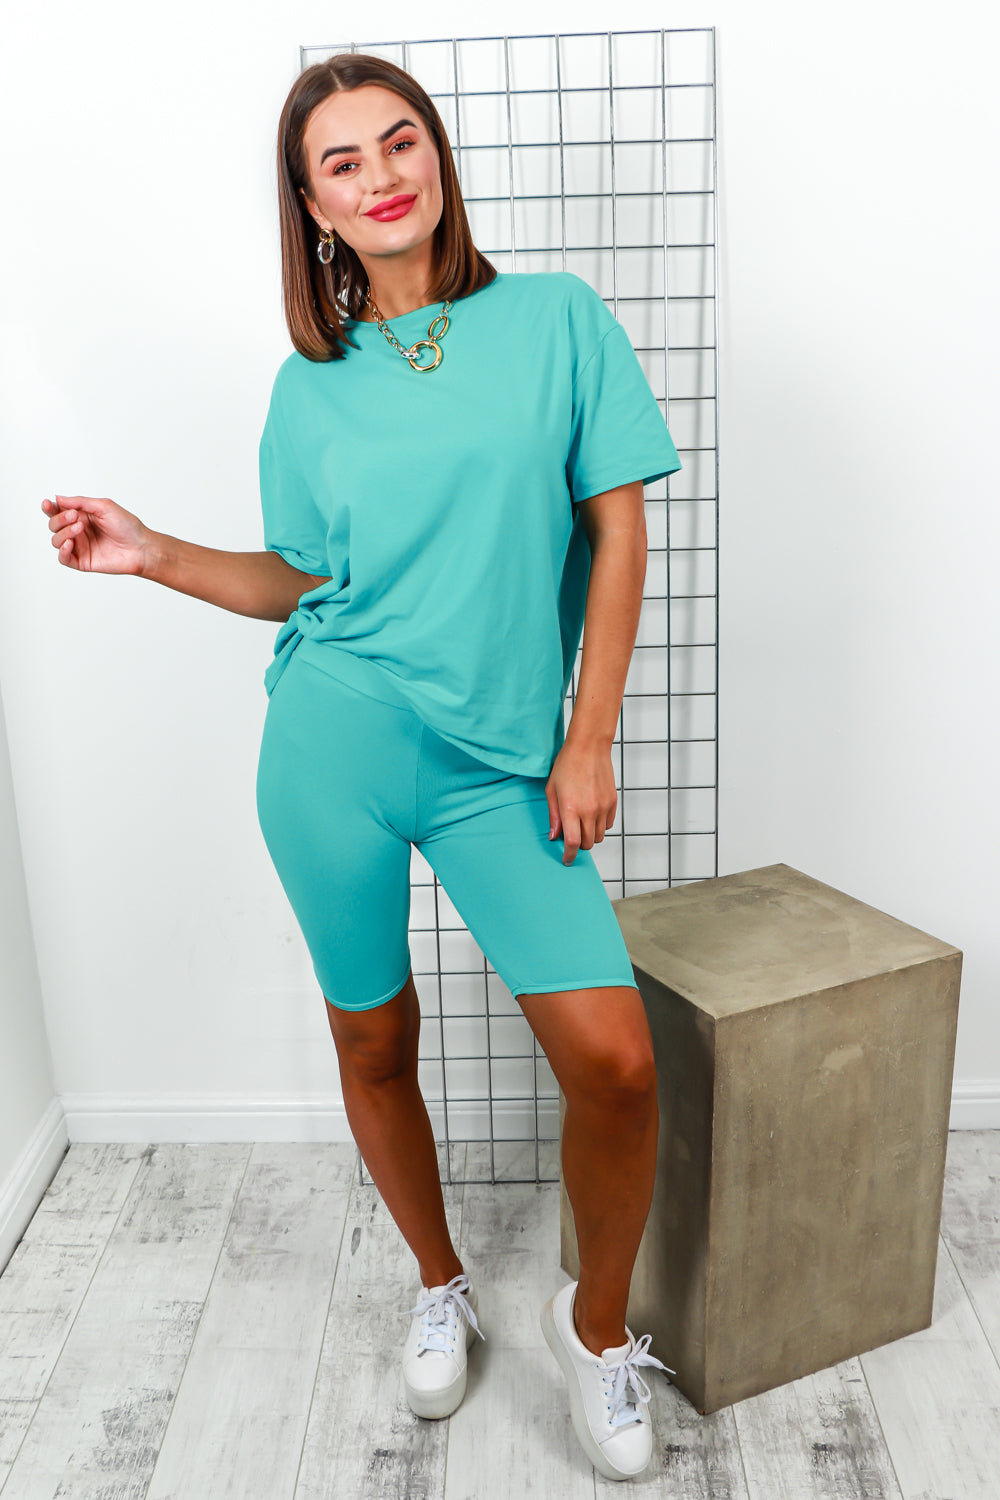 Co-ord Coordinate Set T-shirt Cycle Short Turquoise- DLSB Women's Fashion